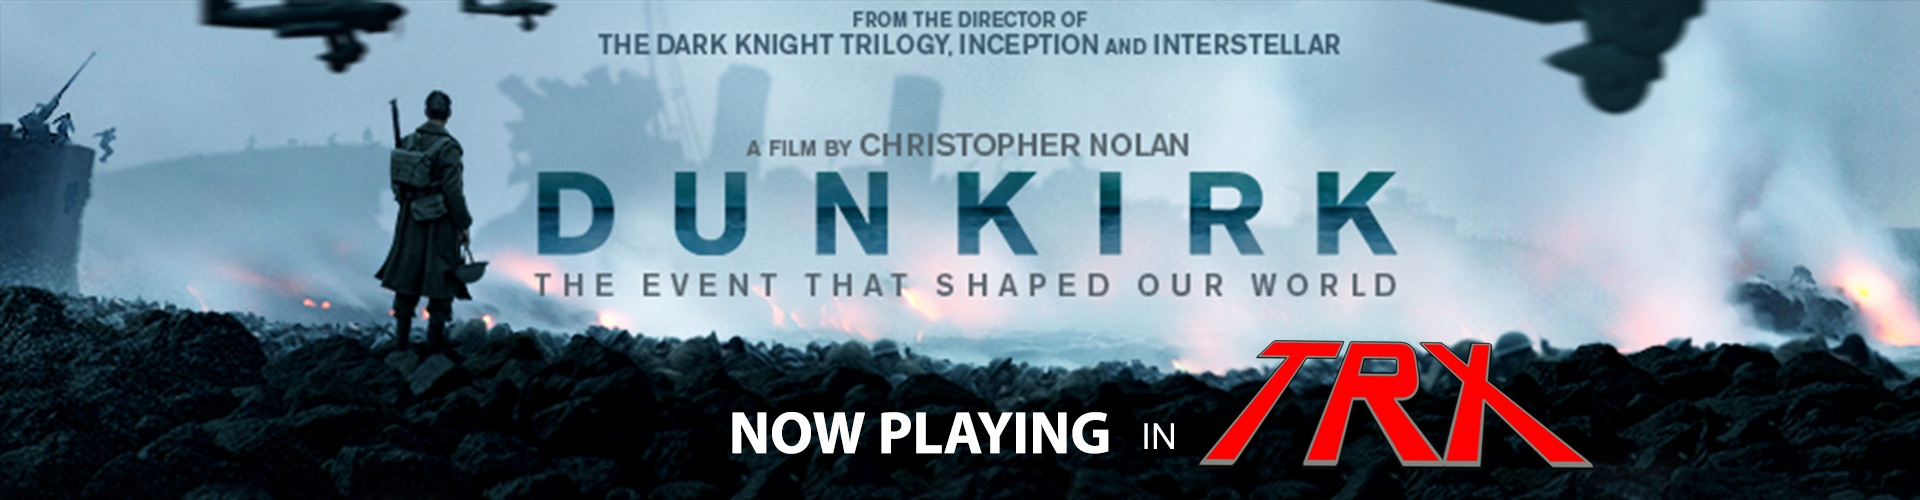 dunkirk-now-playing-TRX